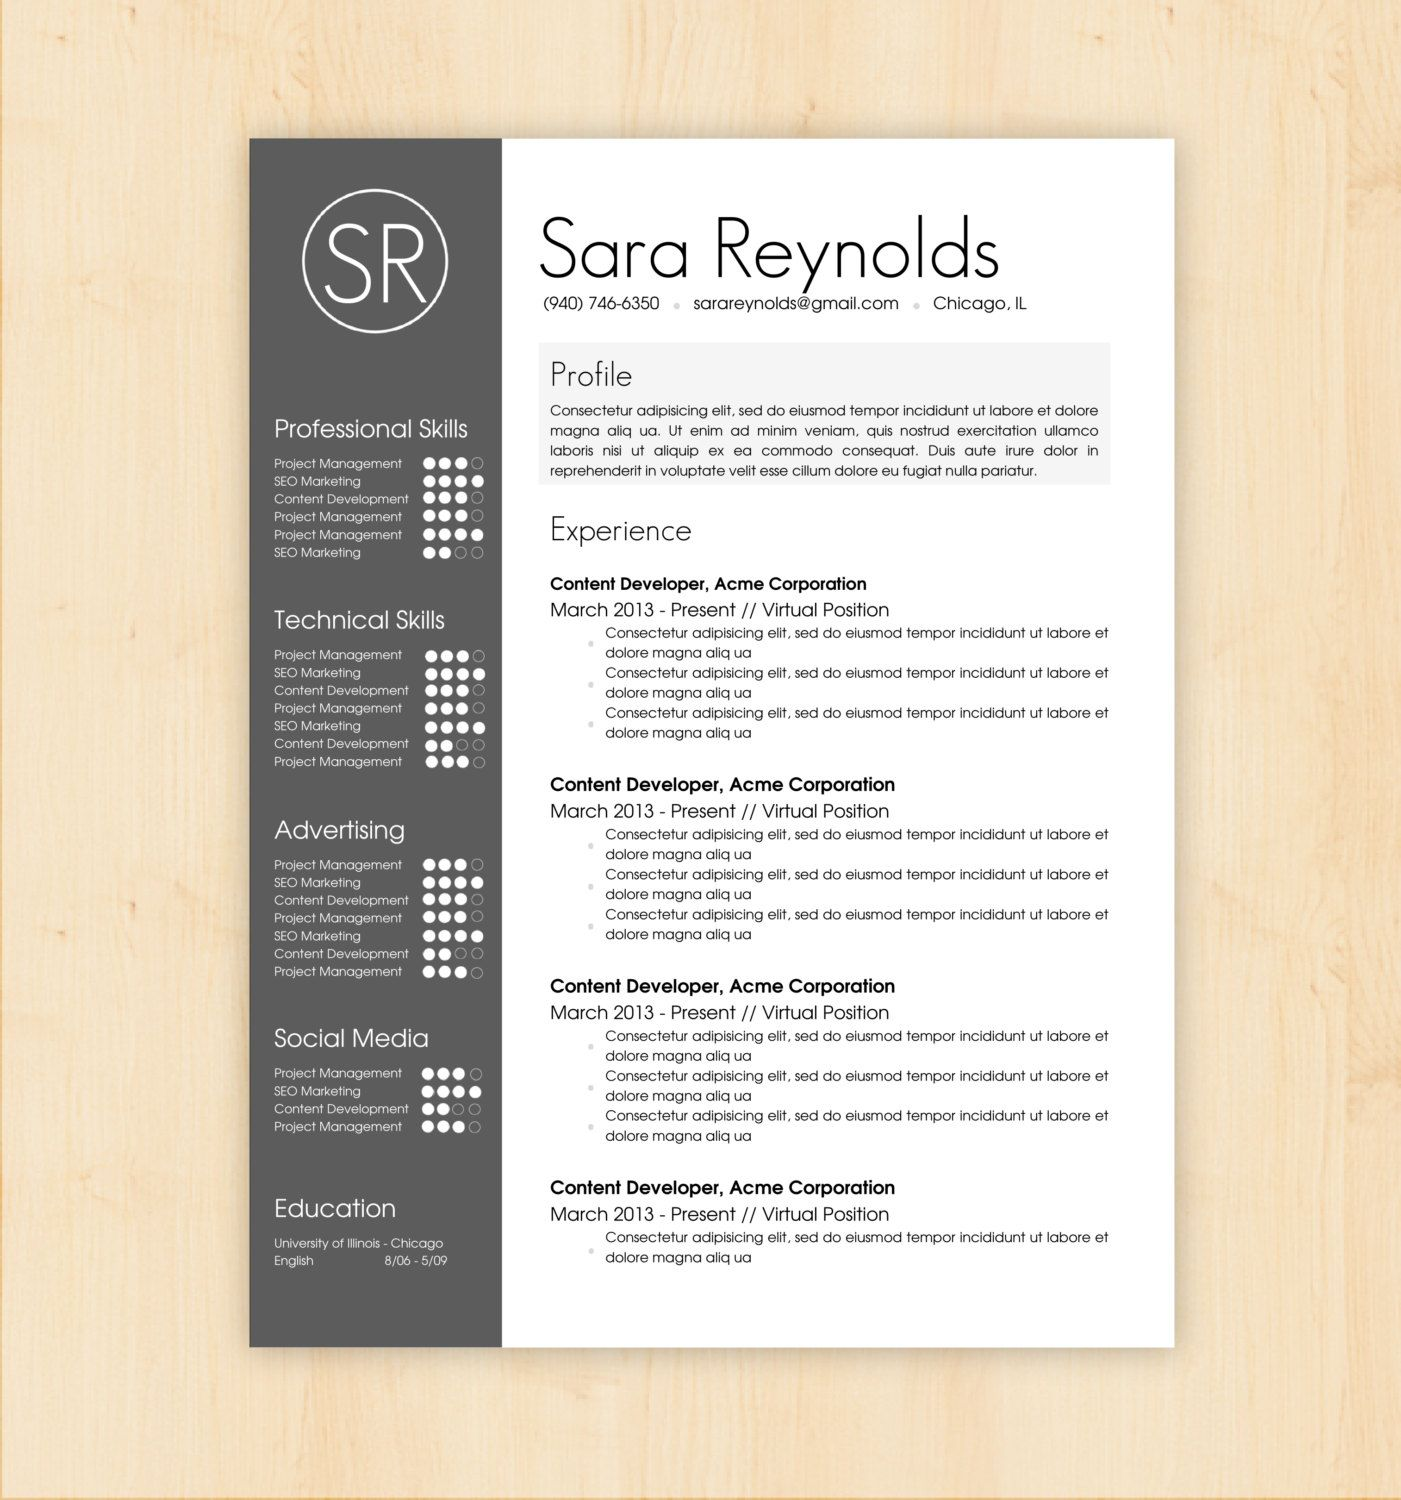 resume Unique Resume Templates 4page resume template cv pack cover letter for word icon wbusiness card modern w skills document